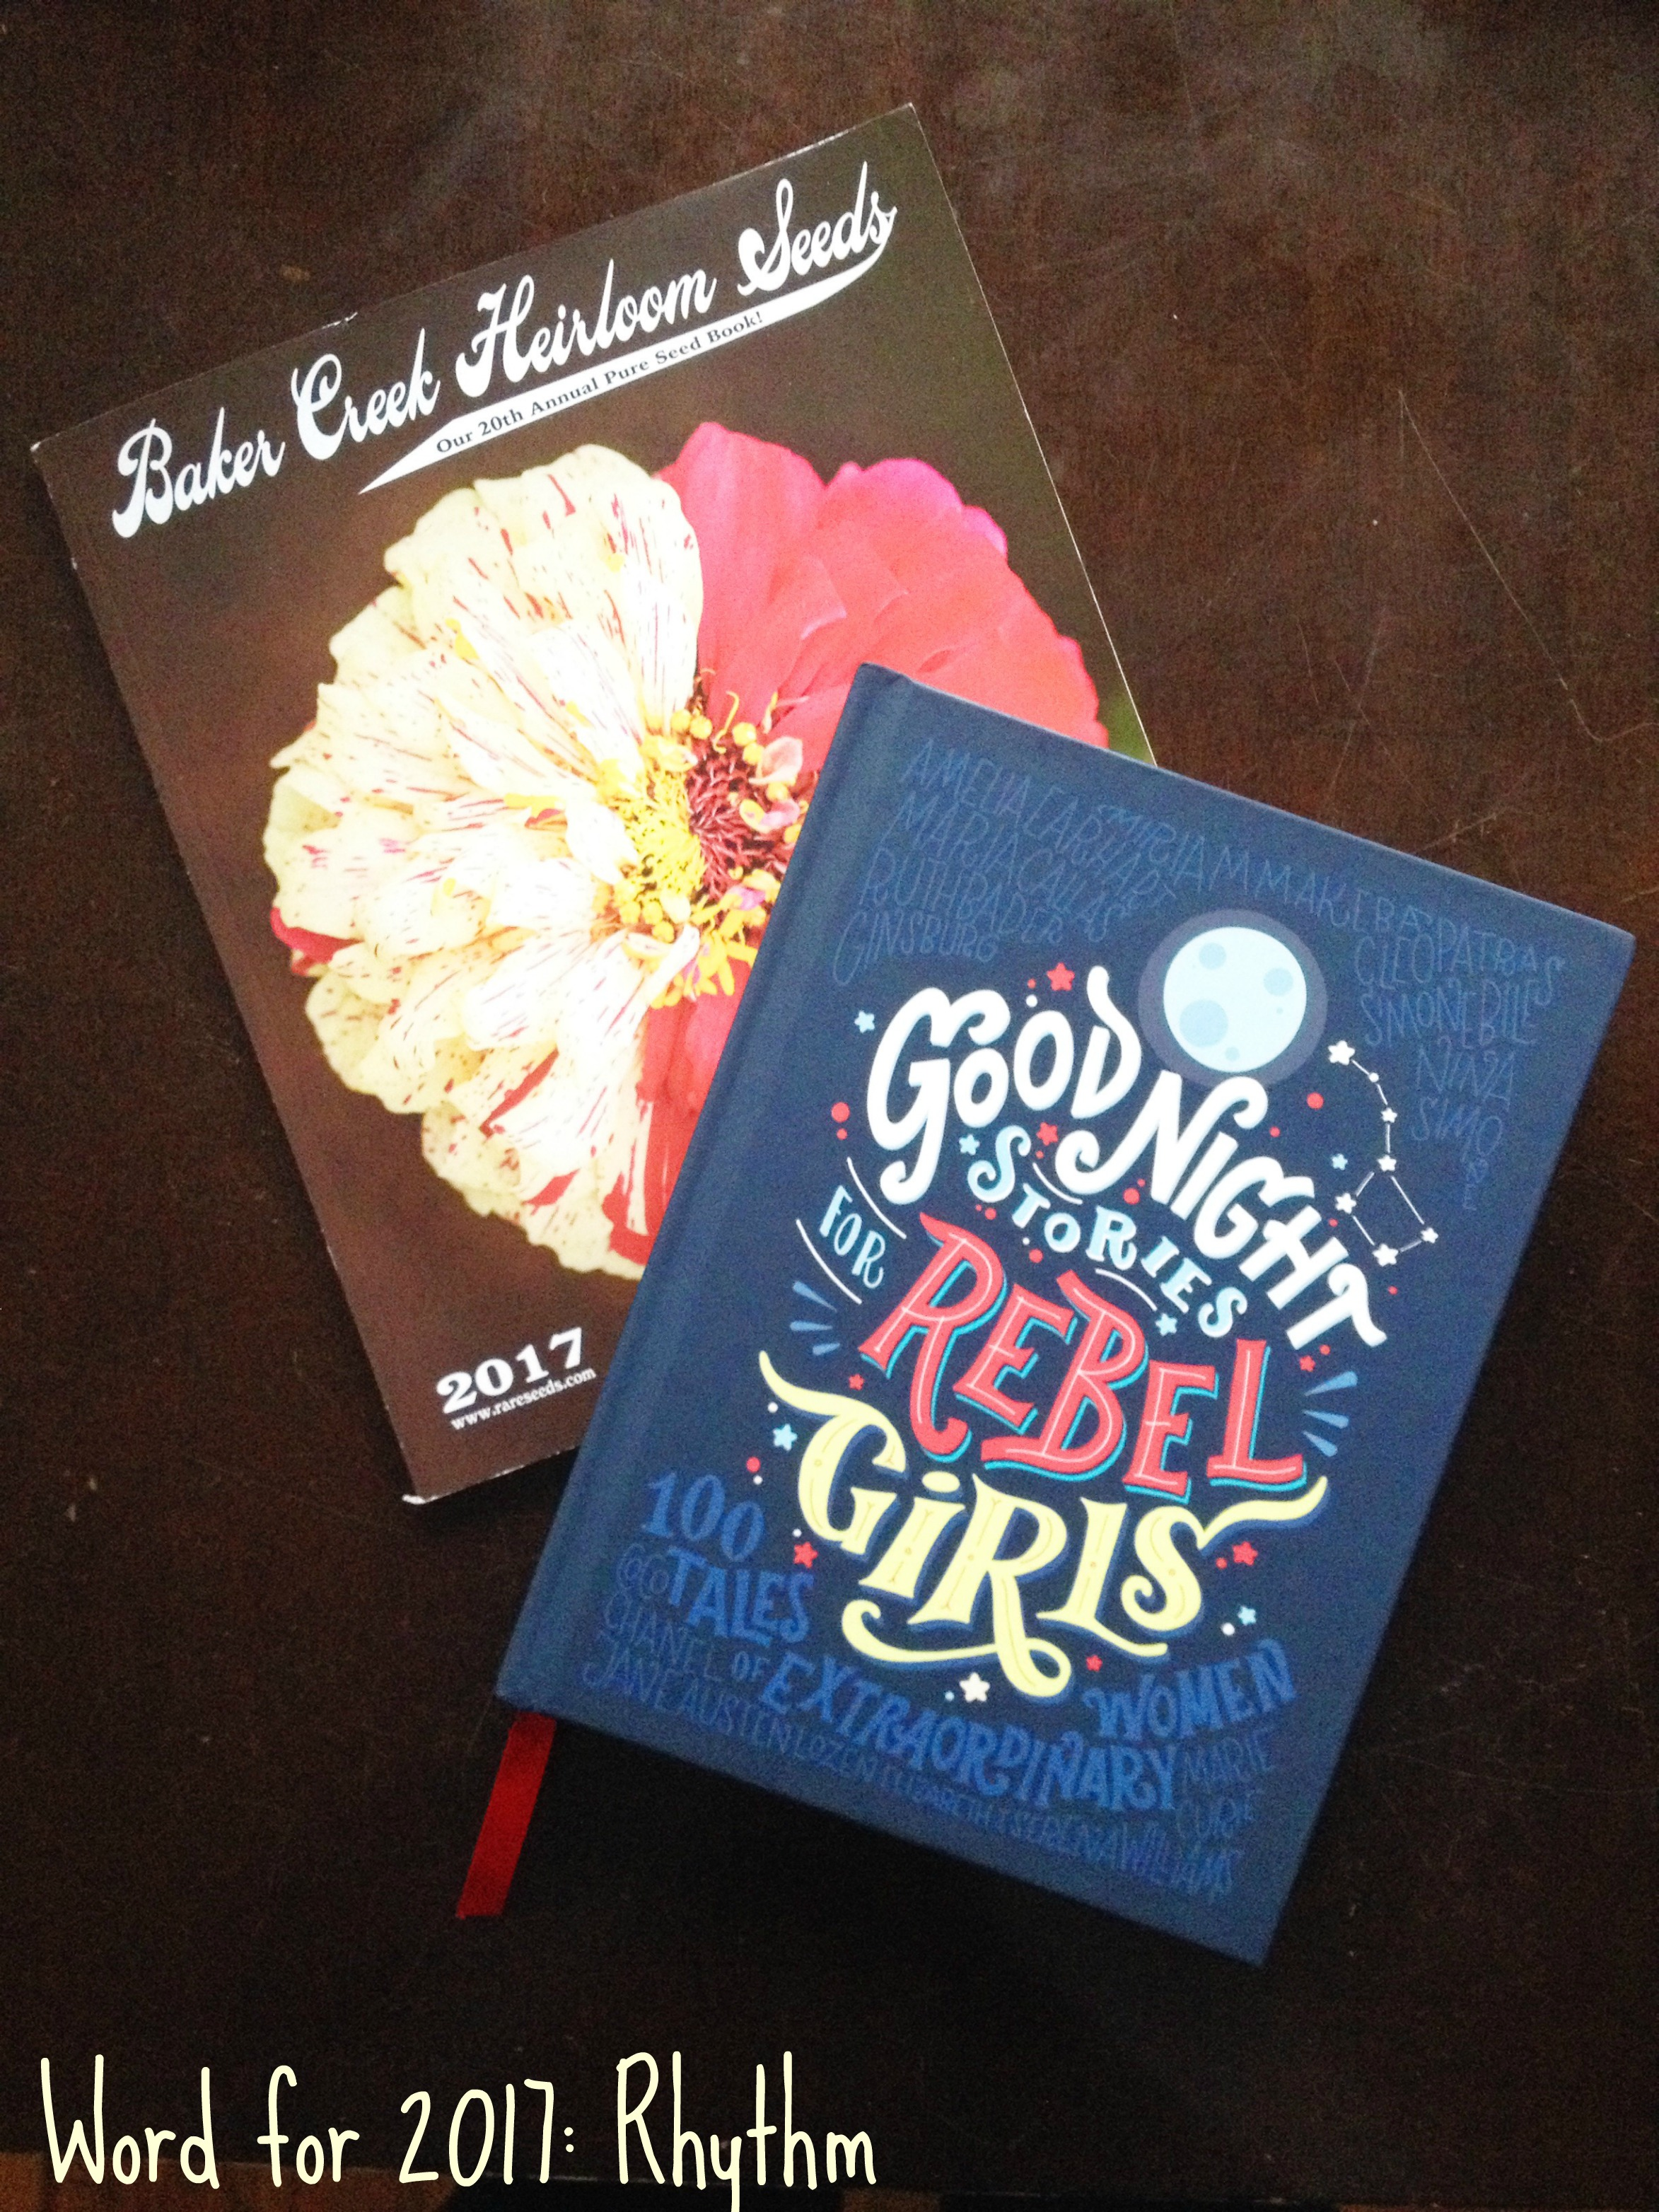 Rhythm is also circling seeds for the garden and reading about women